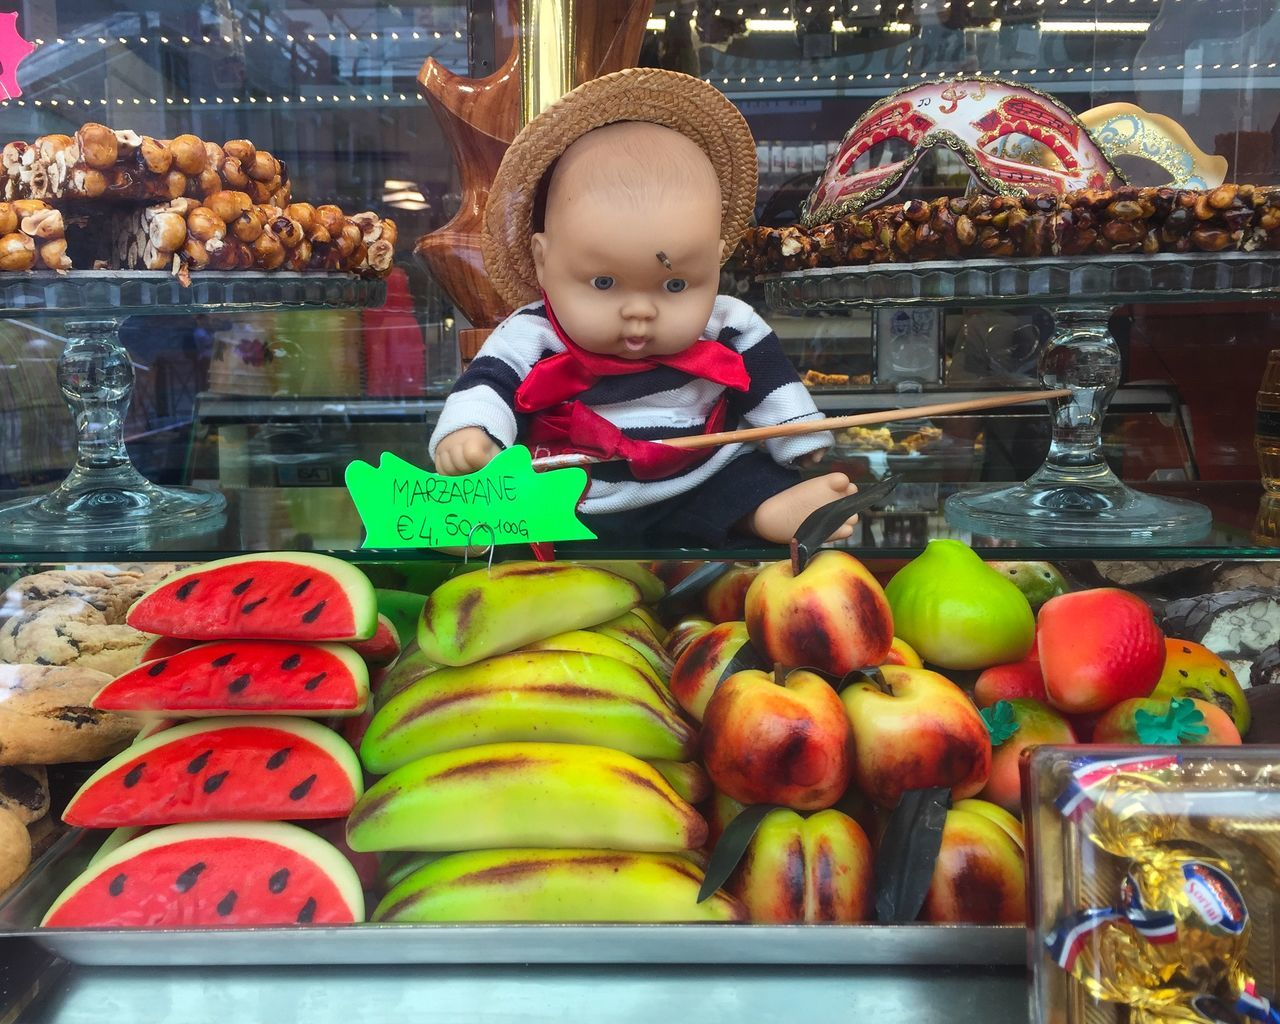 Baby Doll Candy Creepy Baby Food Food And Drink For Sale Fruit Gondolier IPhoneography Italy Marzipan Retail  Sweets Venice Venice, Italy